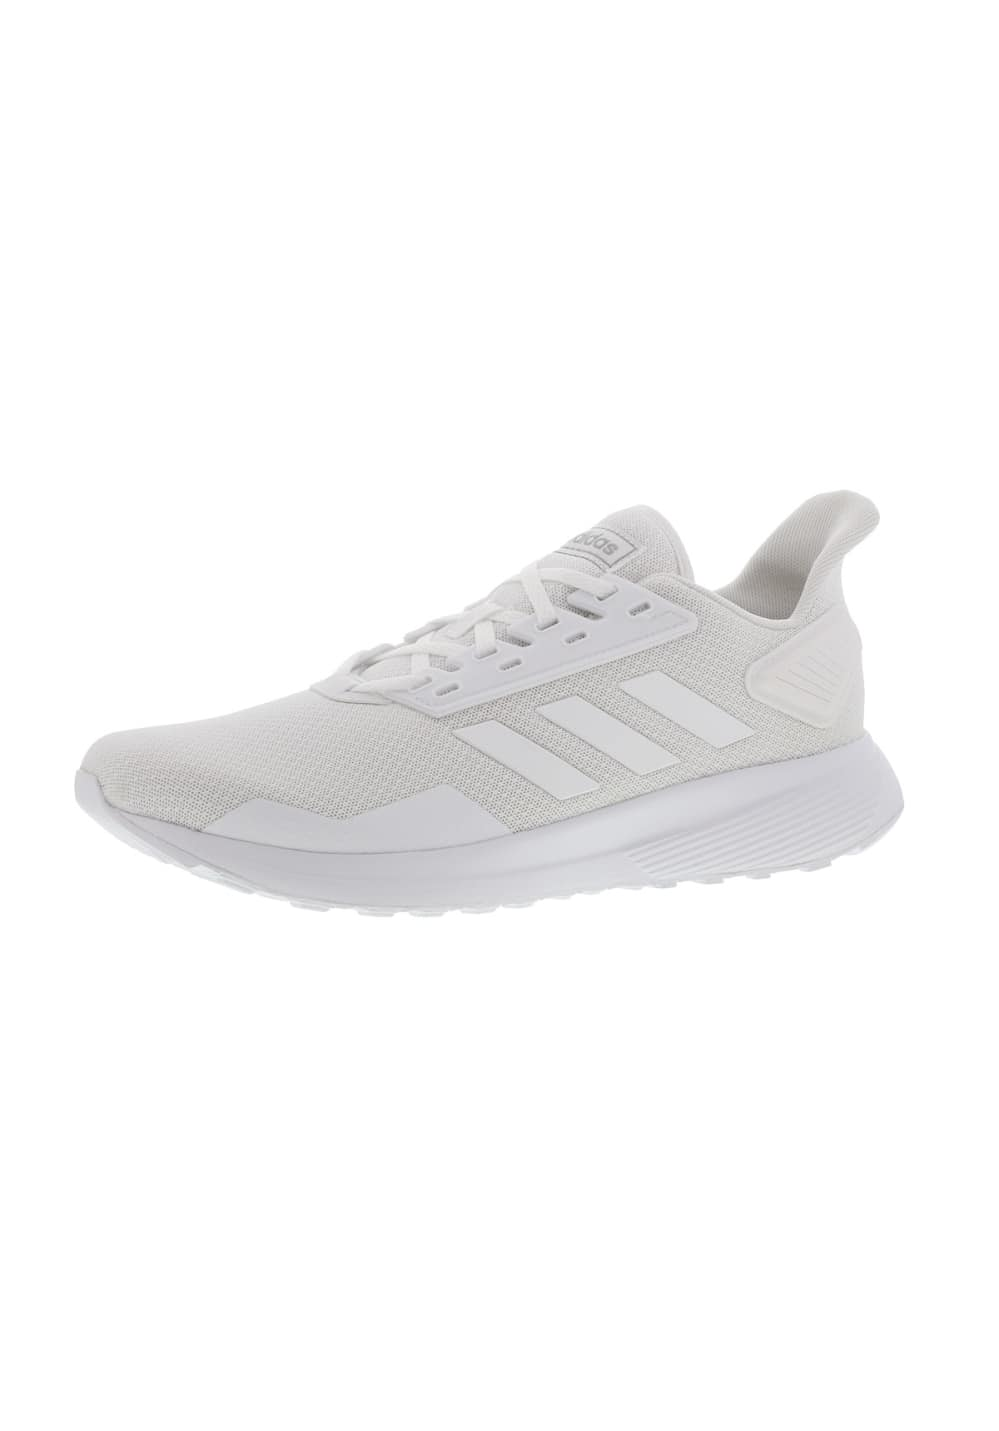 fd2f49226c4 adidas Duramo 9 - Running shoes for Men - White | 21RUN